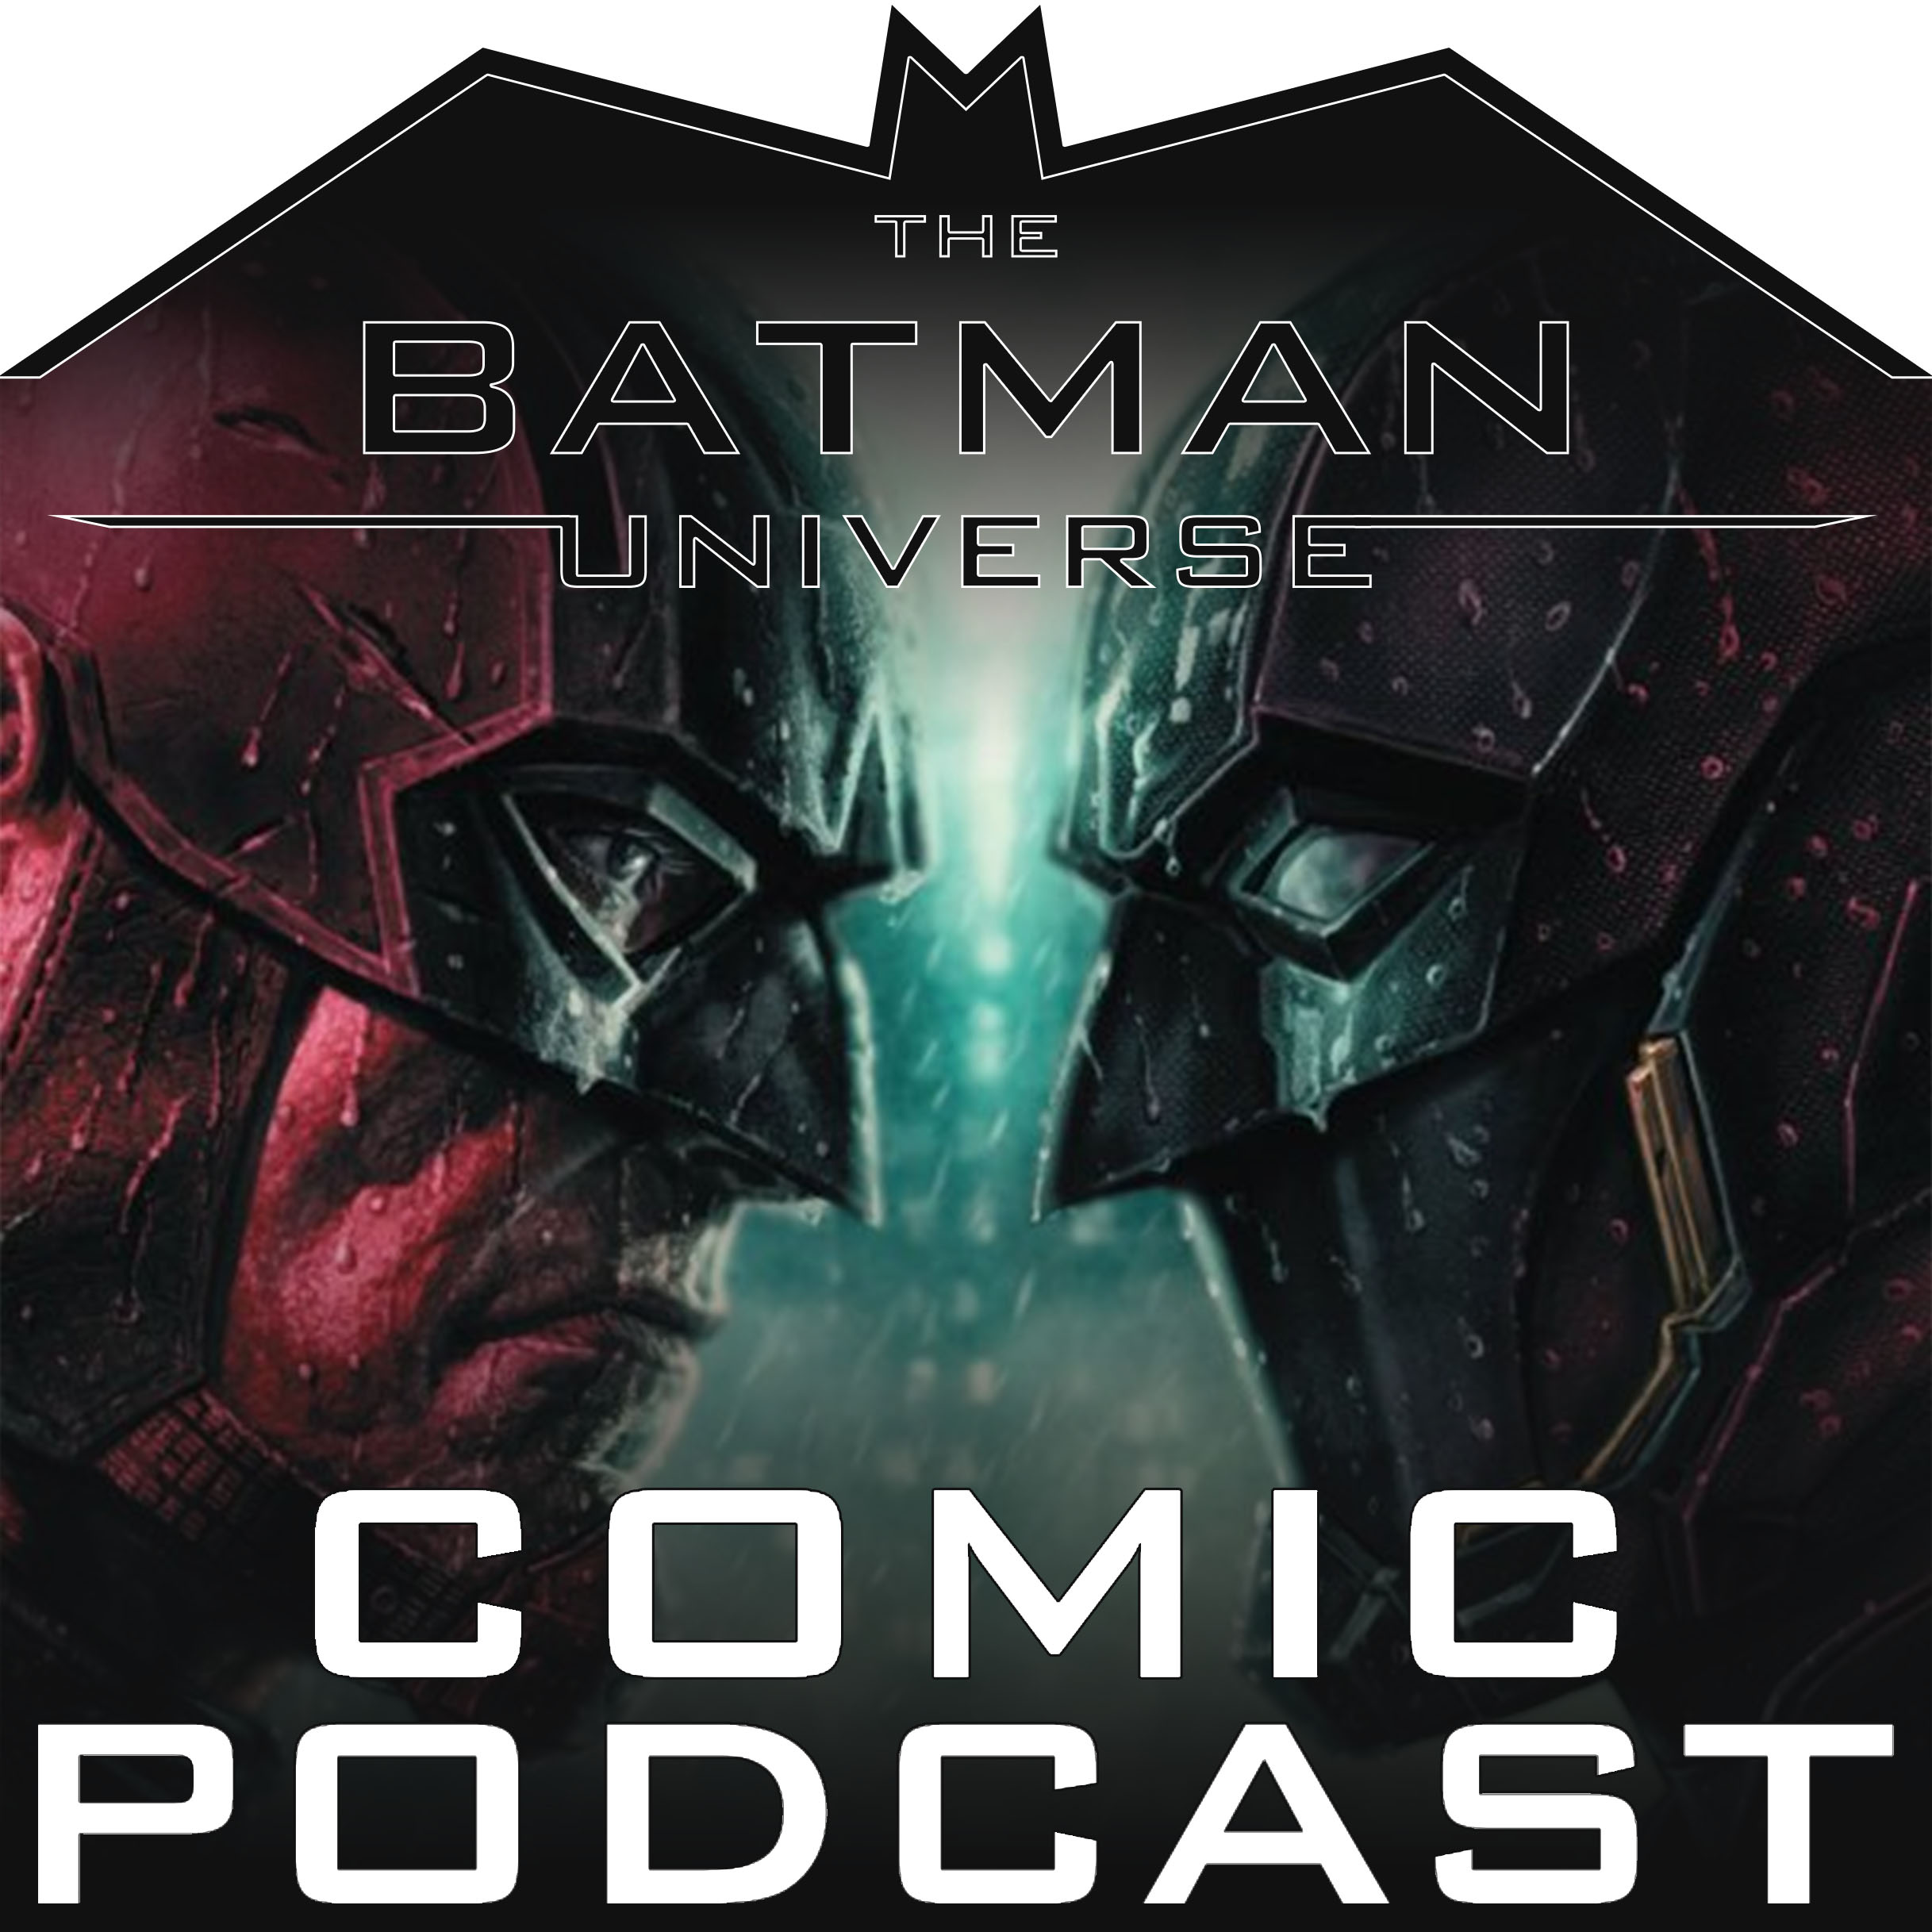 tbu comic podcast season 13: episode 3